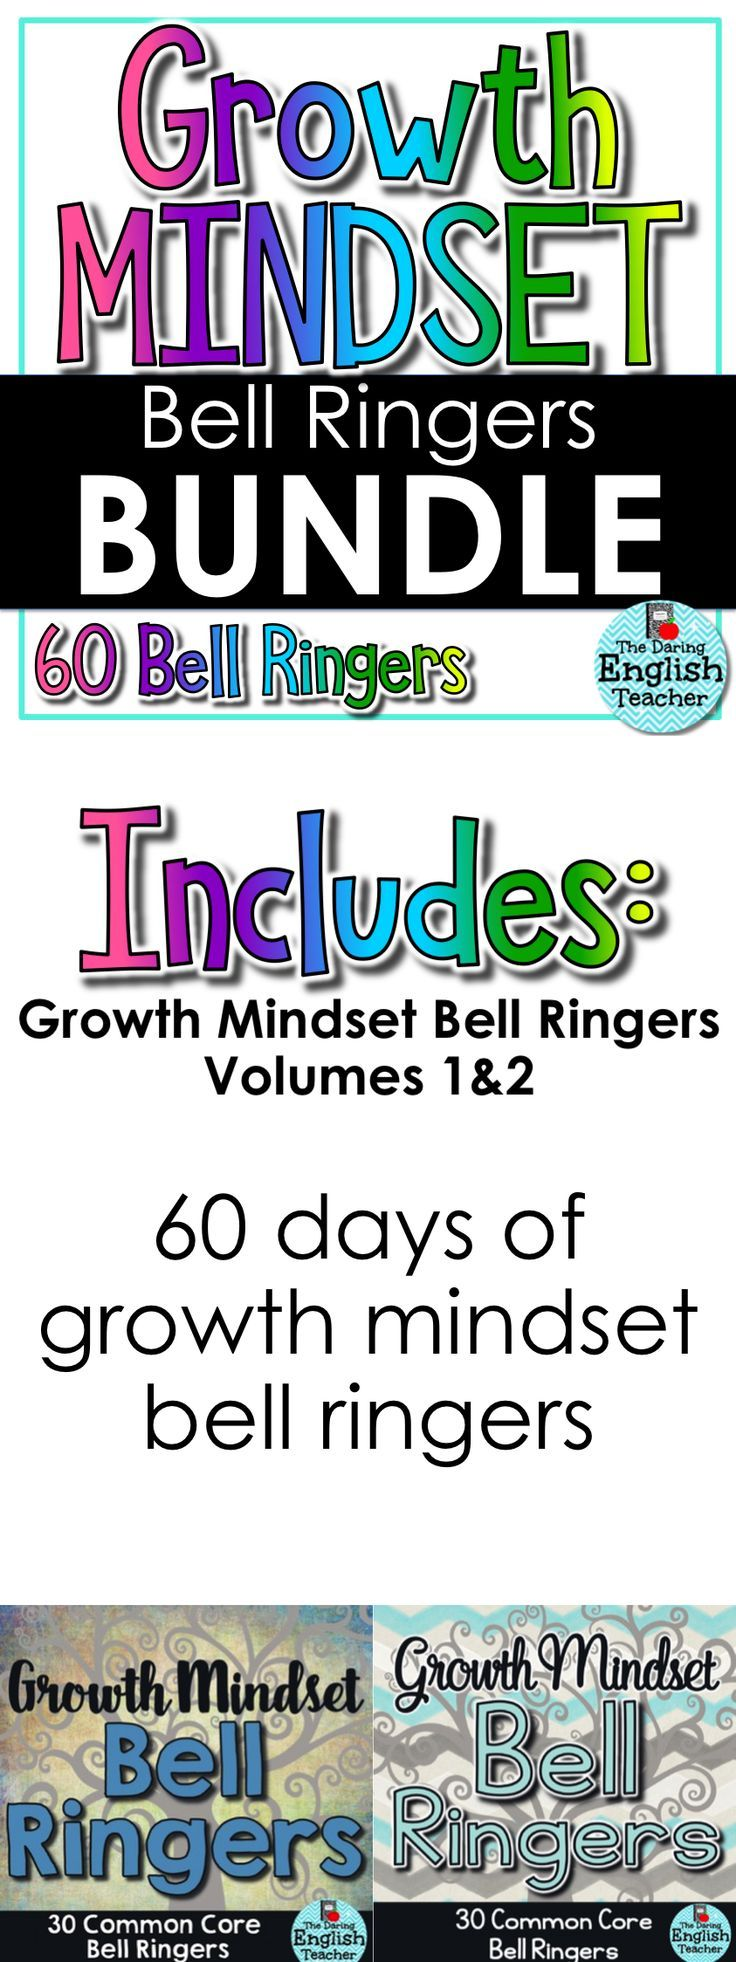 Establish critical thinking and a growth mindset in your classroom within the first five minutes with growth mindset bell ringers.